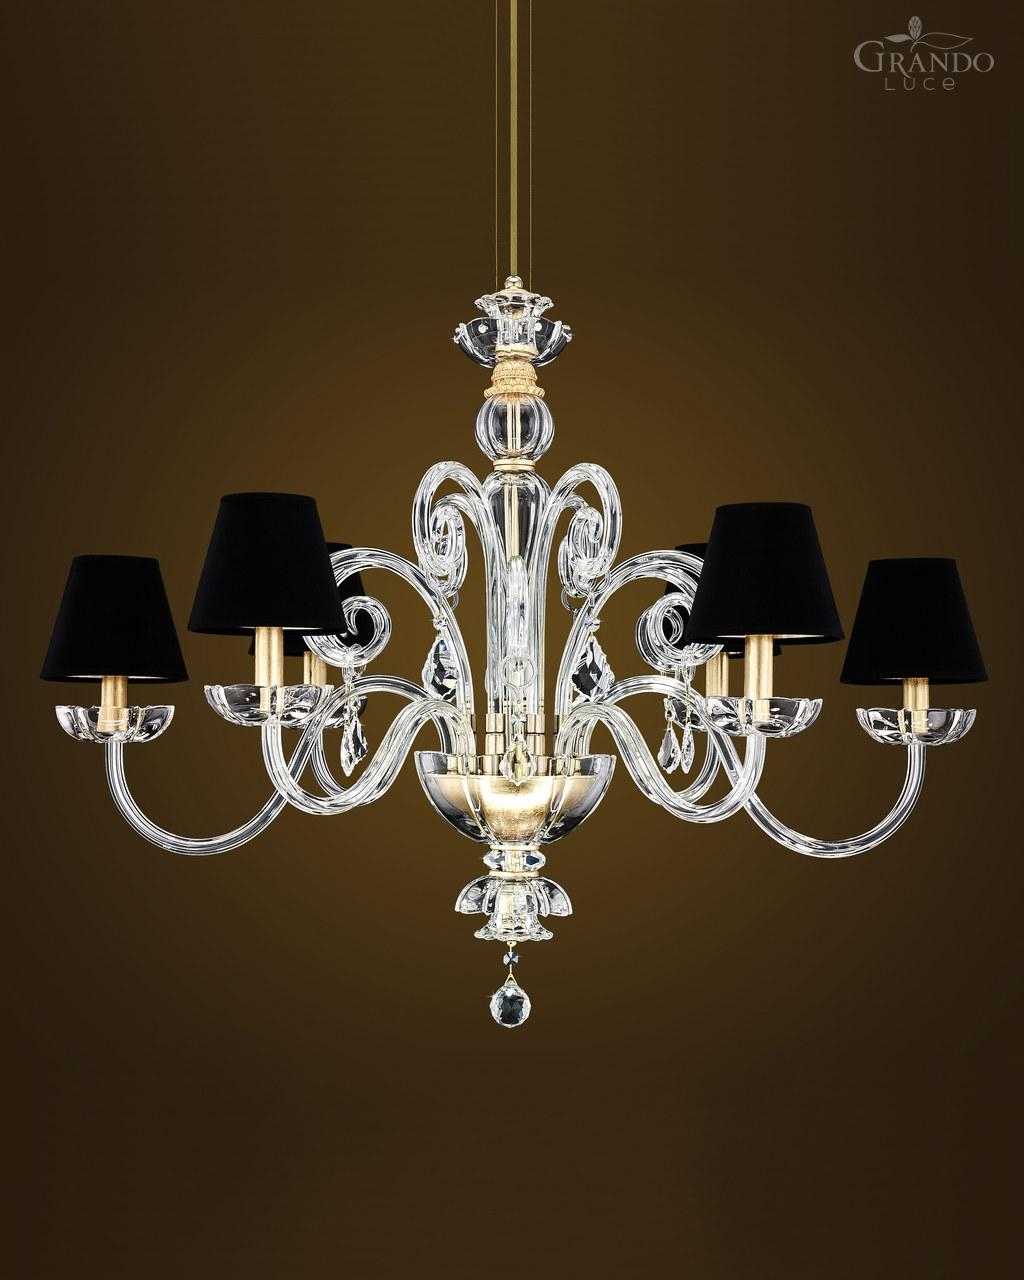 1256 Rl Gold Leaf Crystal Chandelier With Swarovski Elements Within Crystal Gold Chandelier (Image 2 of 15)